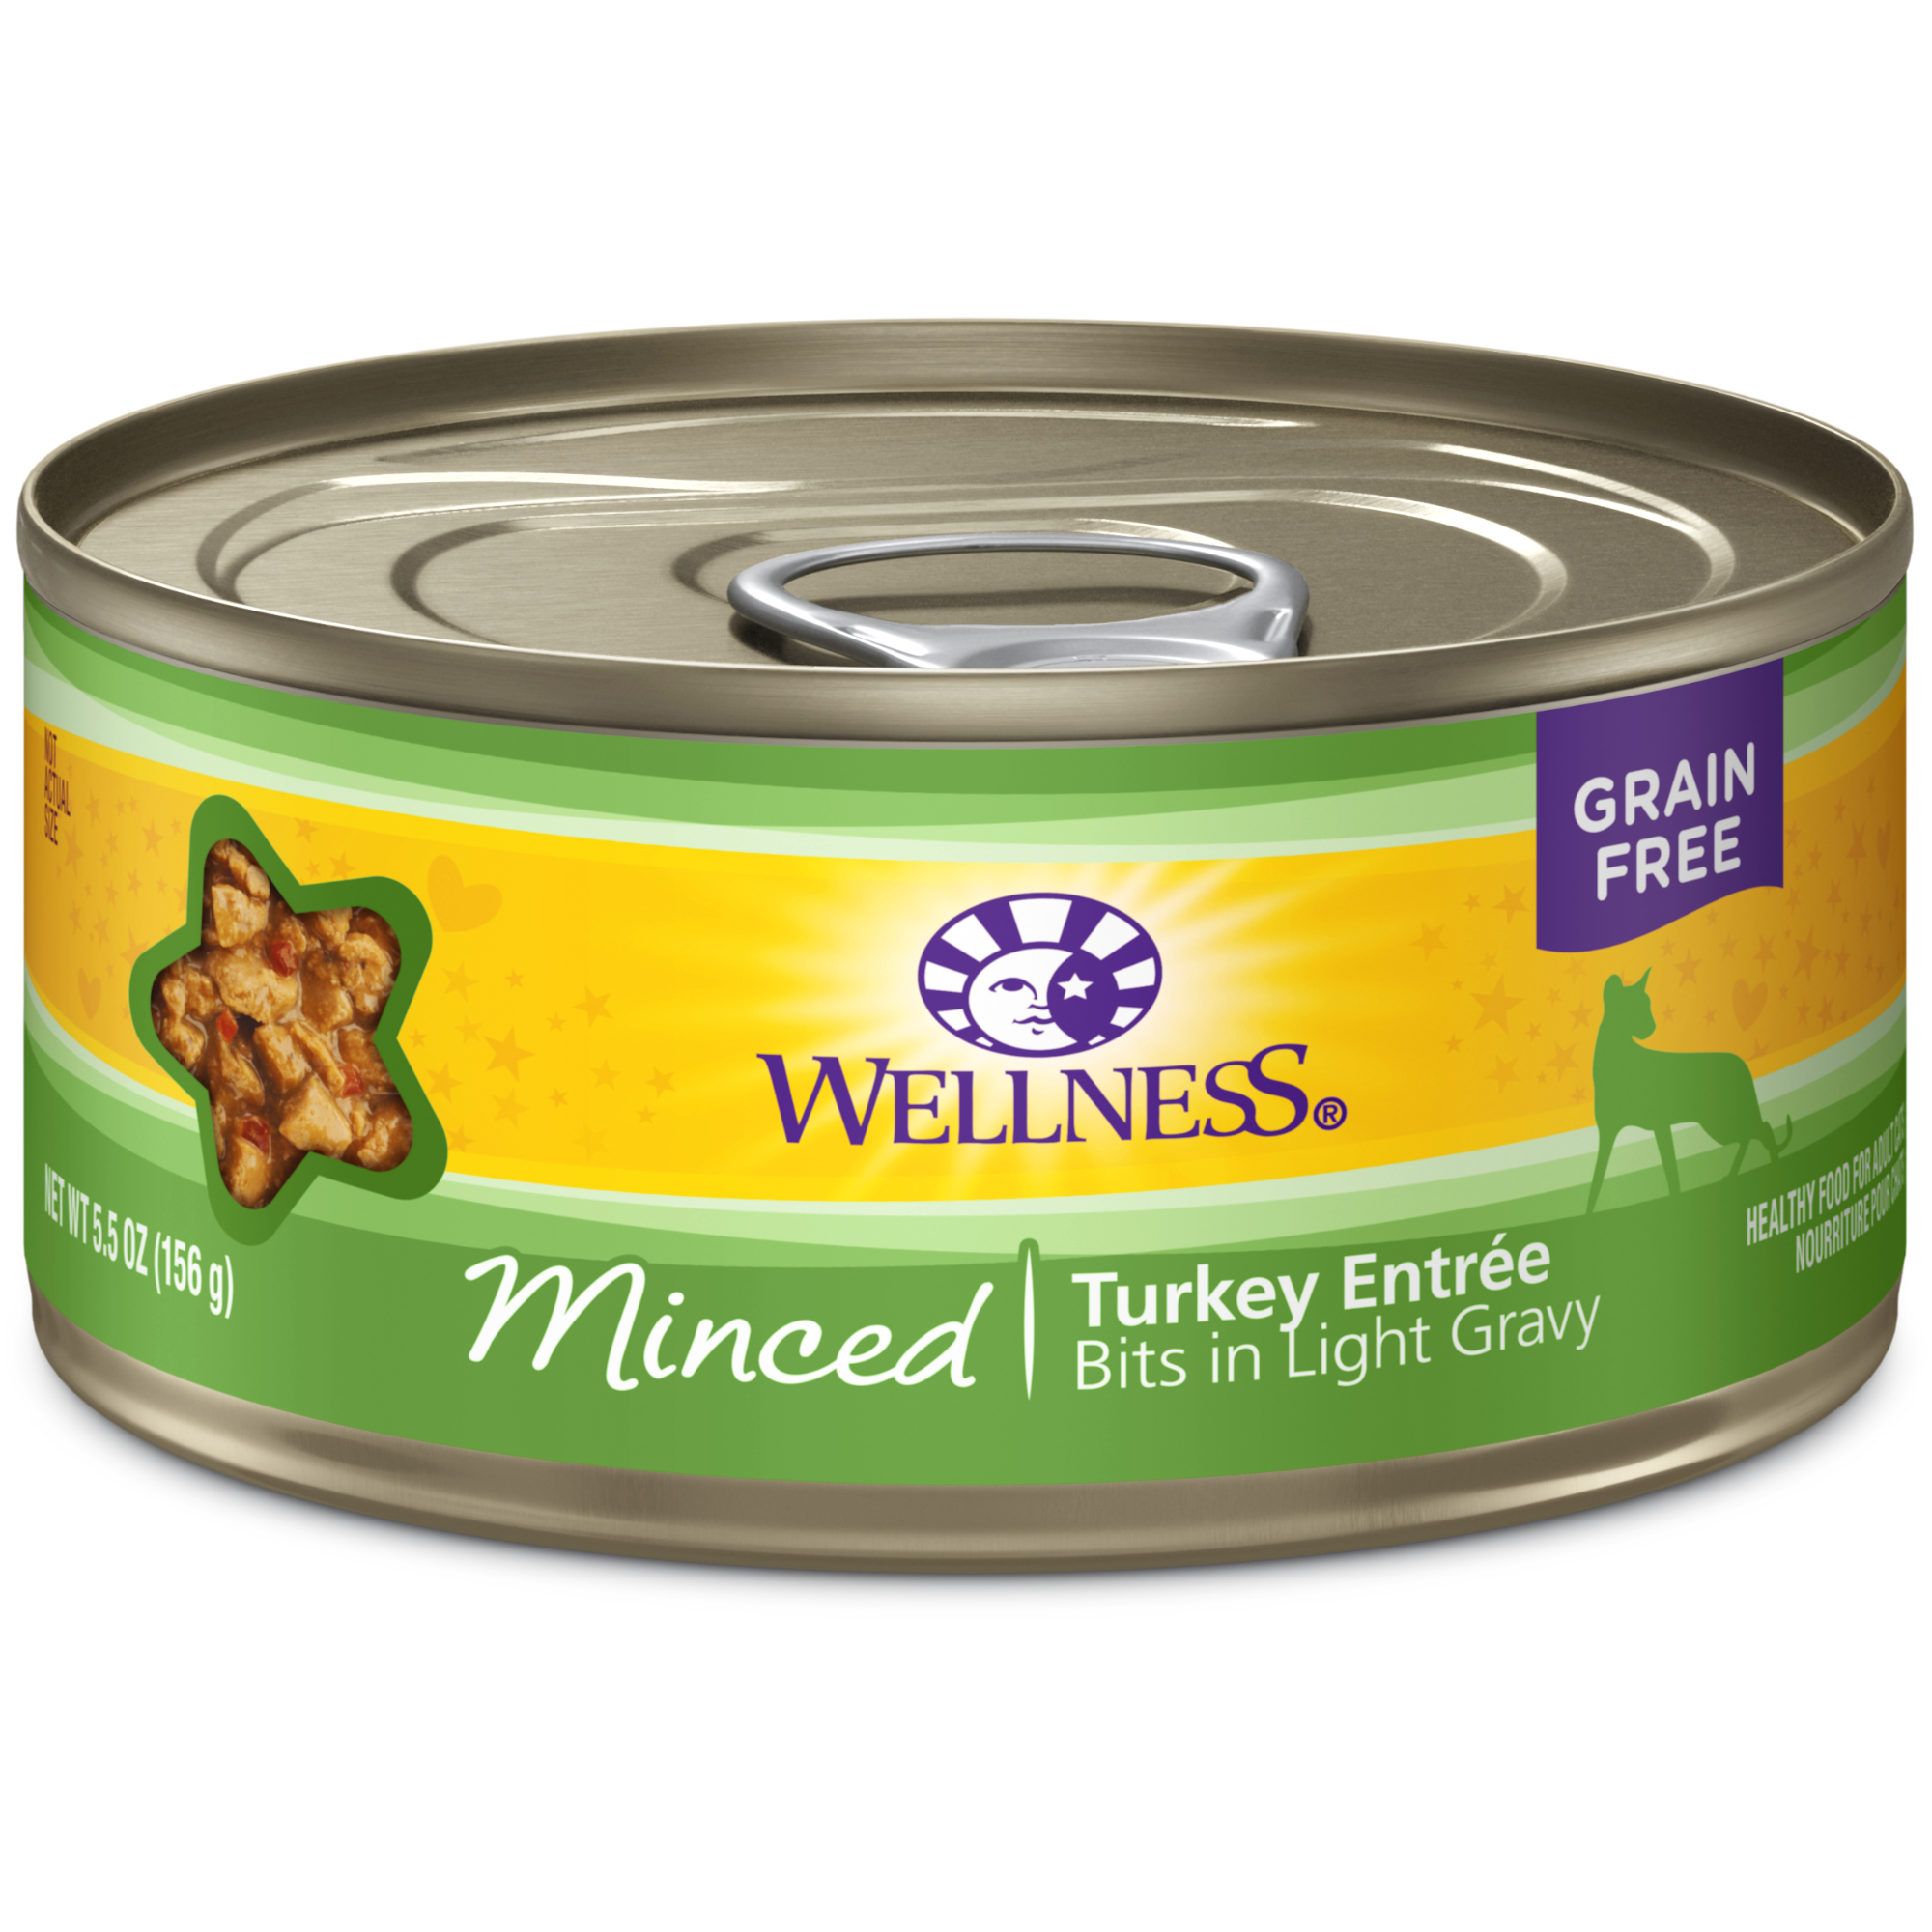 Minced Turkey